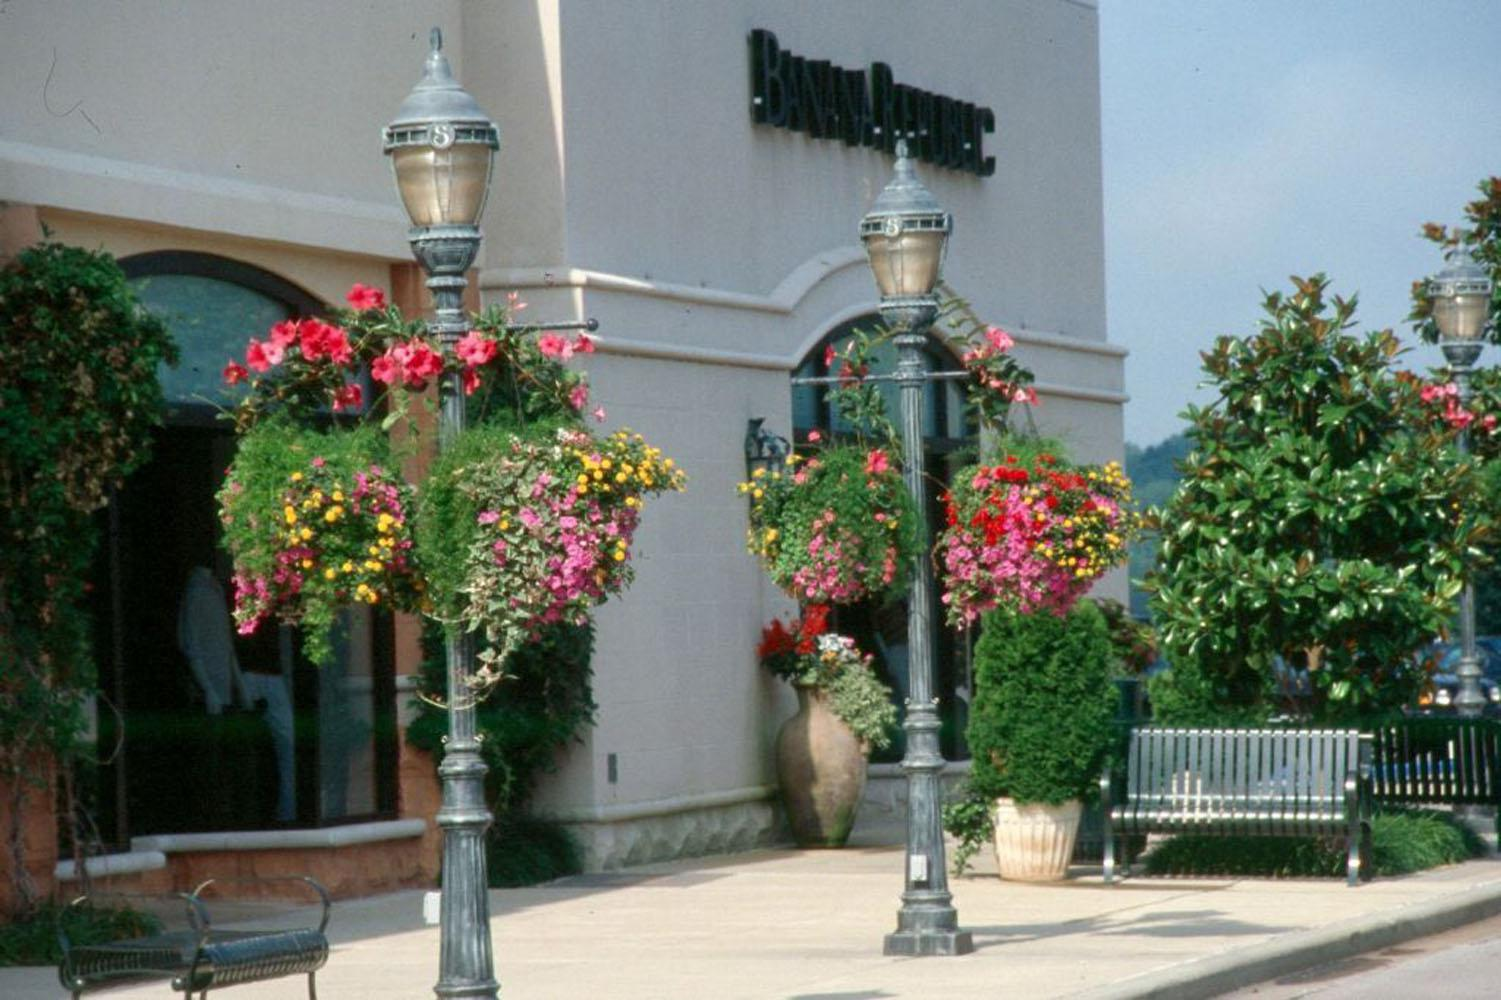 Gardeners can buy hanging baskets already blooming or make their own.